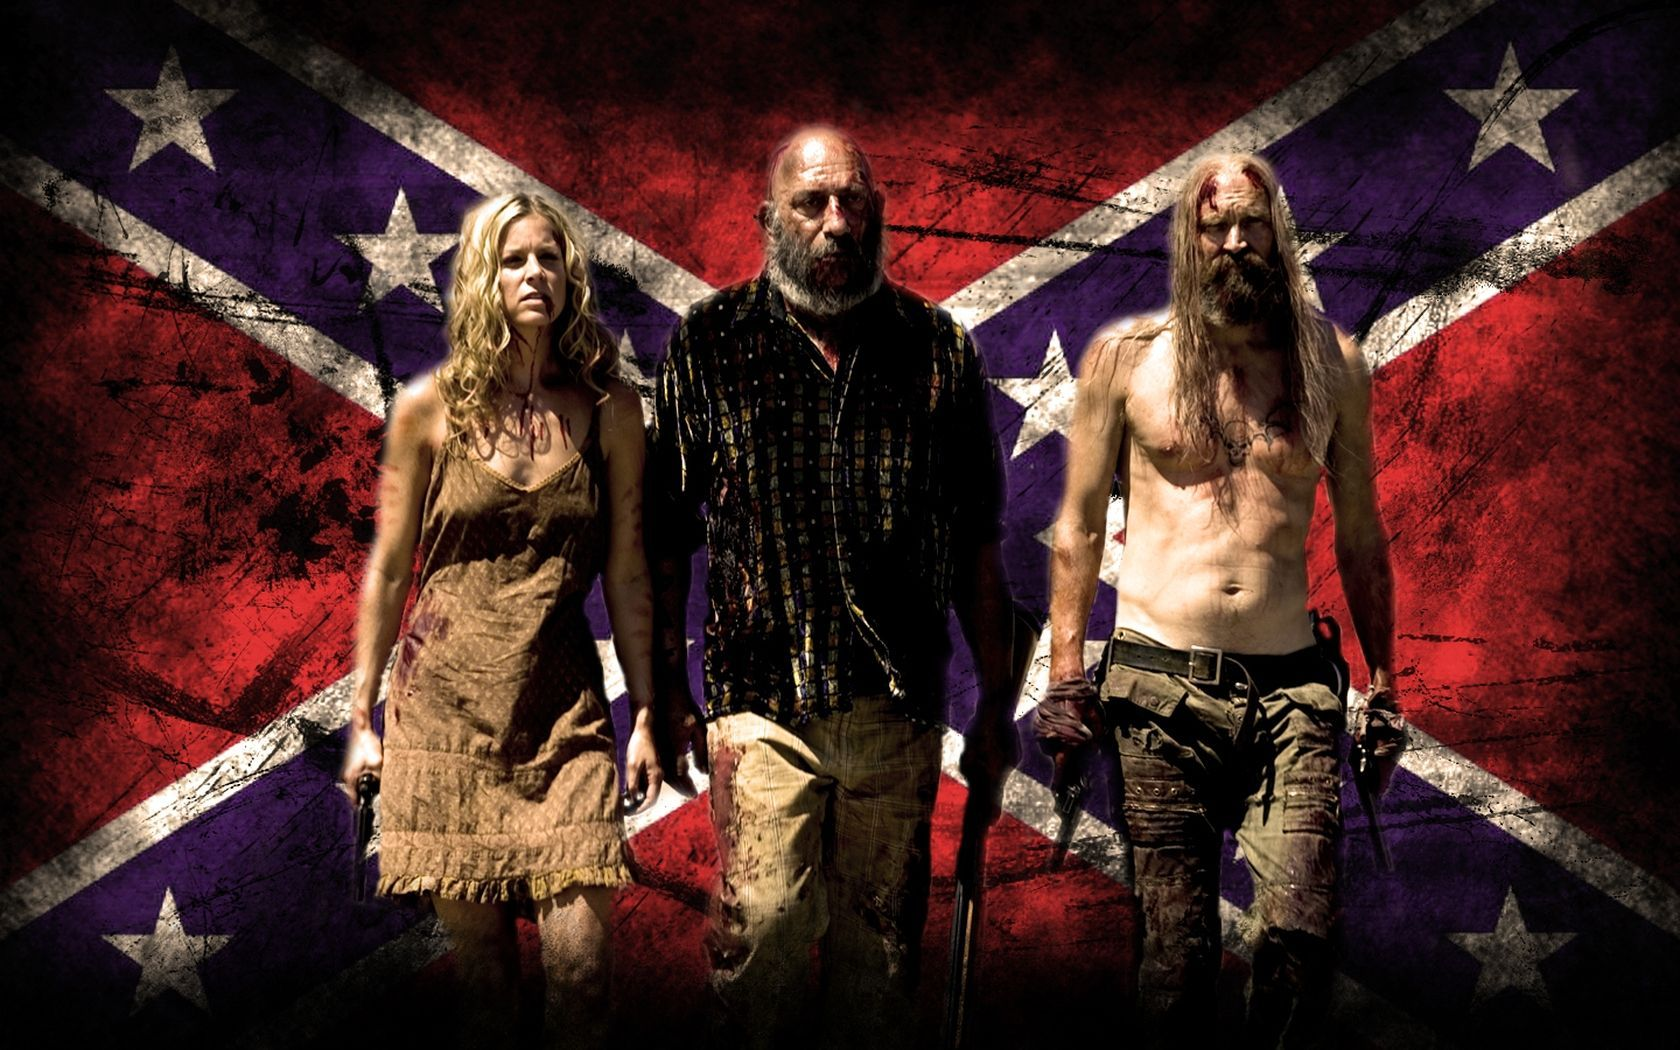 Pictures Of House Of 1000 Corpses Movie